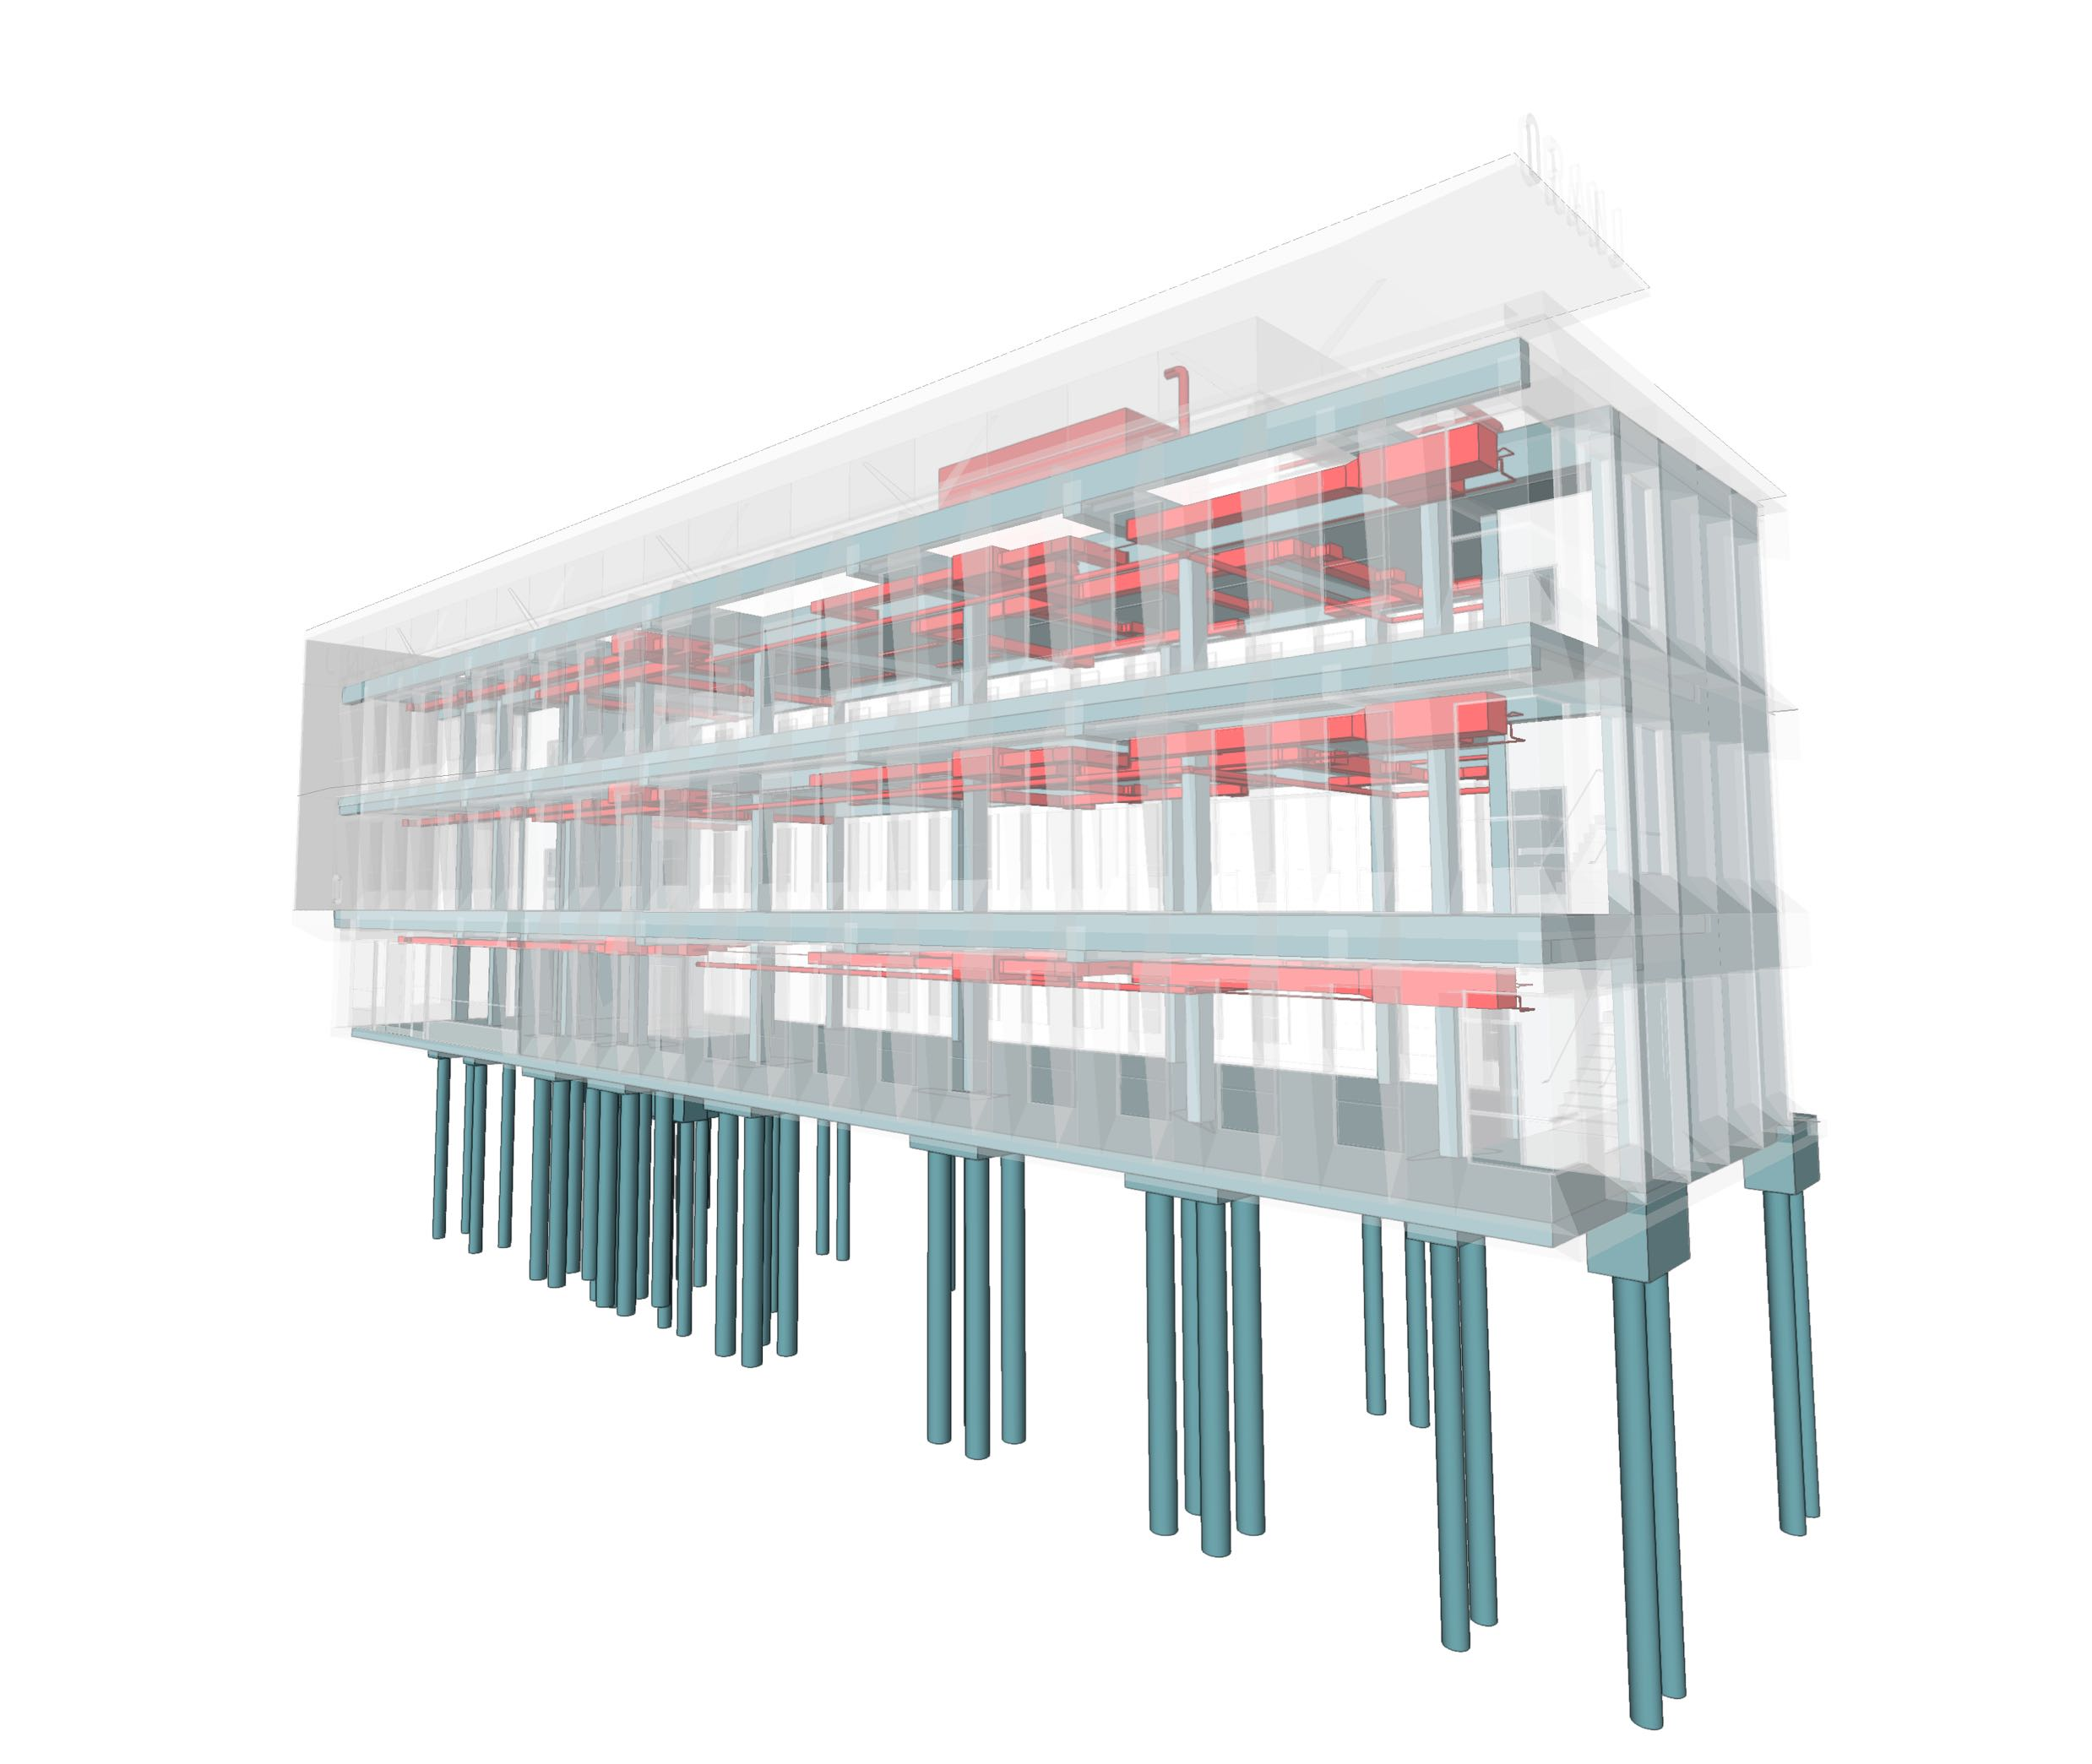 VIDEO: 3 BIM Myths Busted for Architects